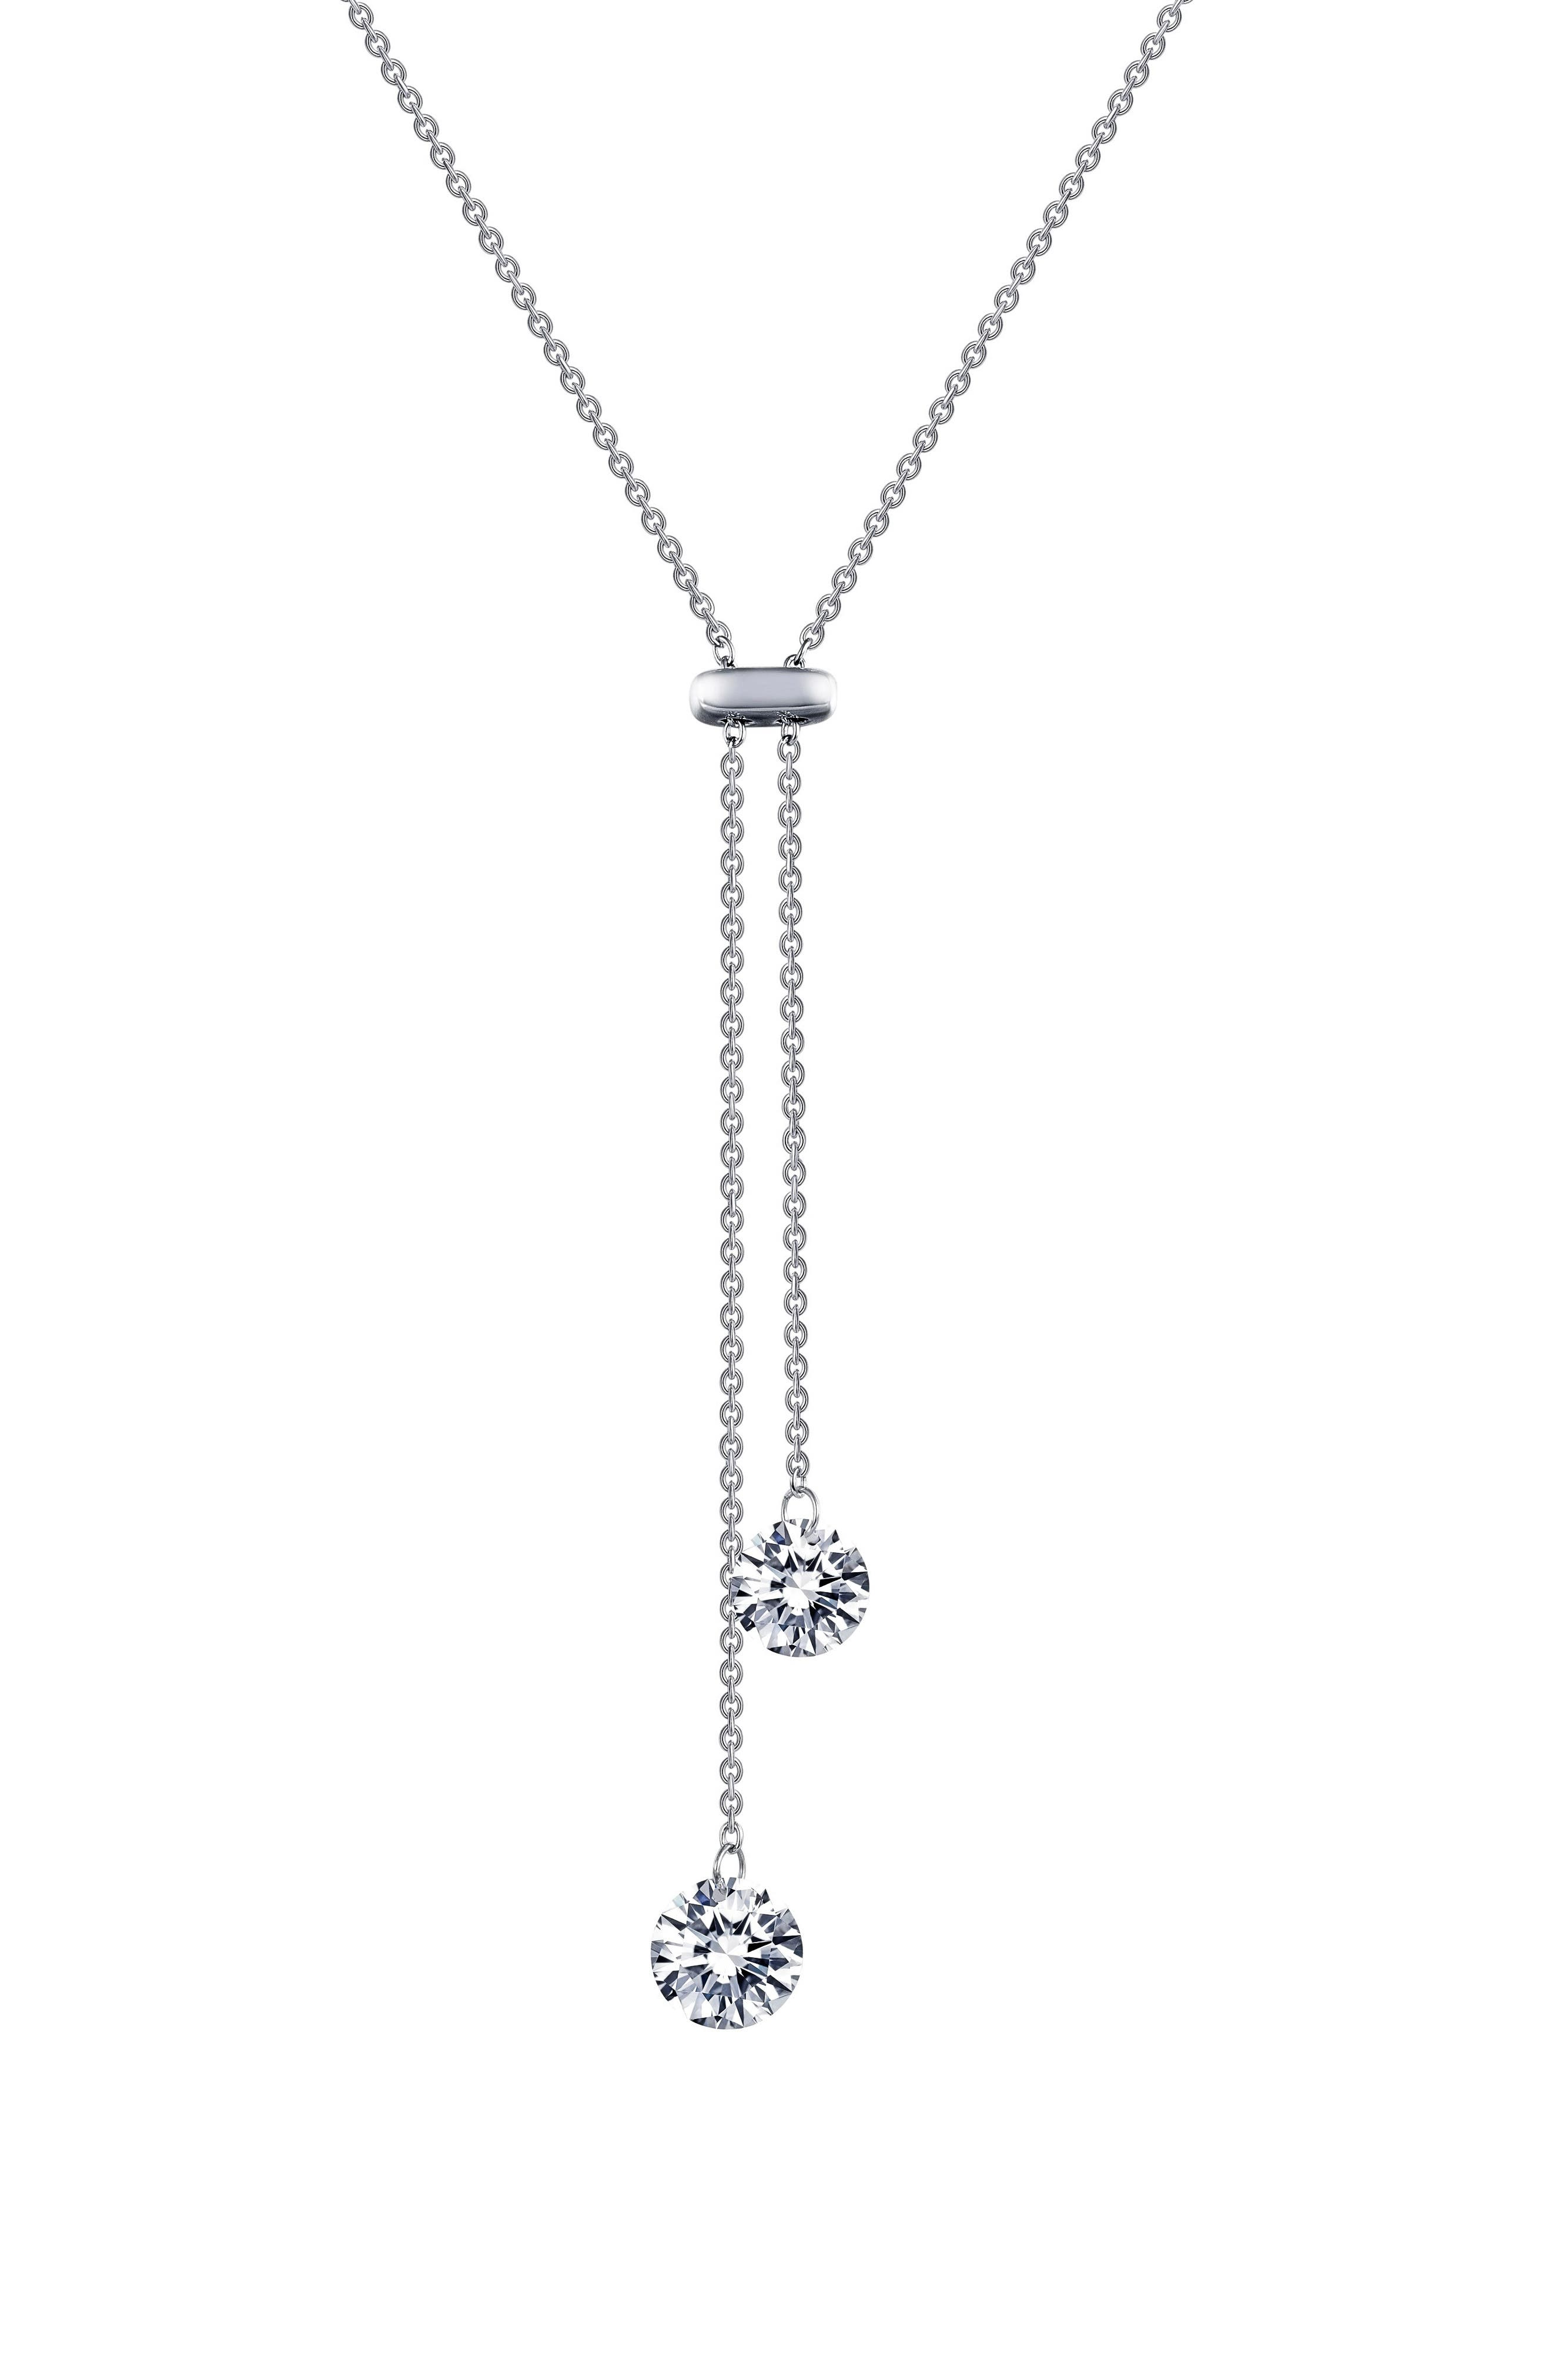 Simulated Diamond Pendant Necklace,                             Main thumbnail 1, color,                             Silver